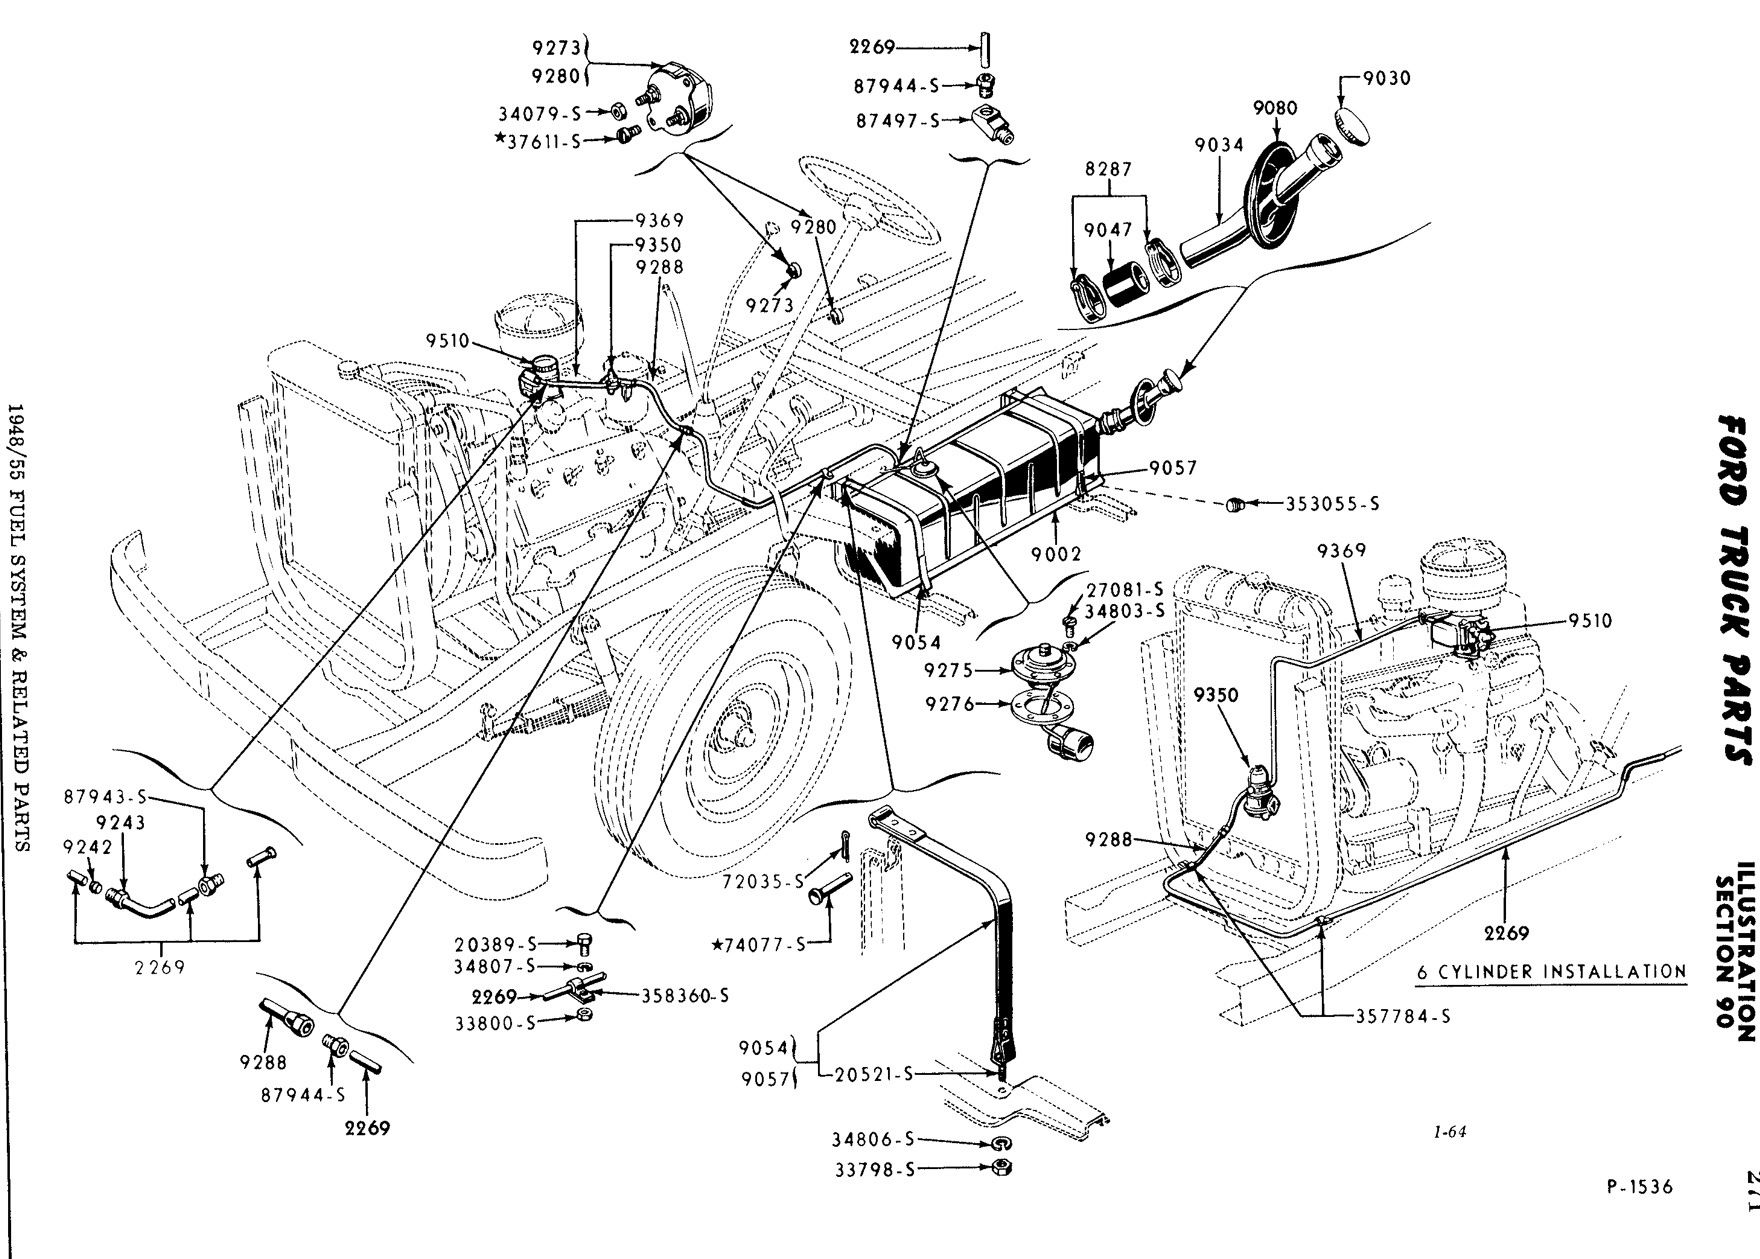 i4 engine diagram